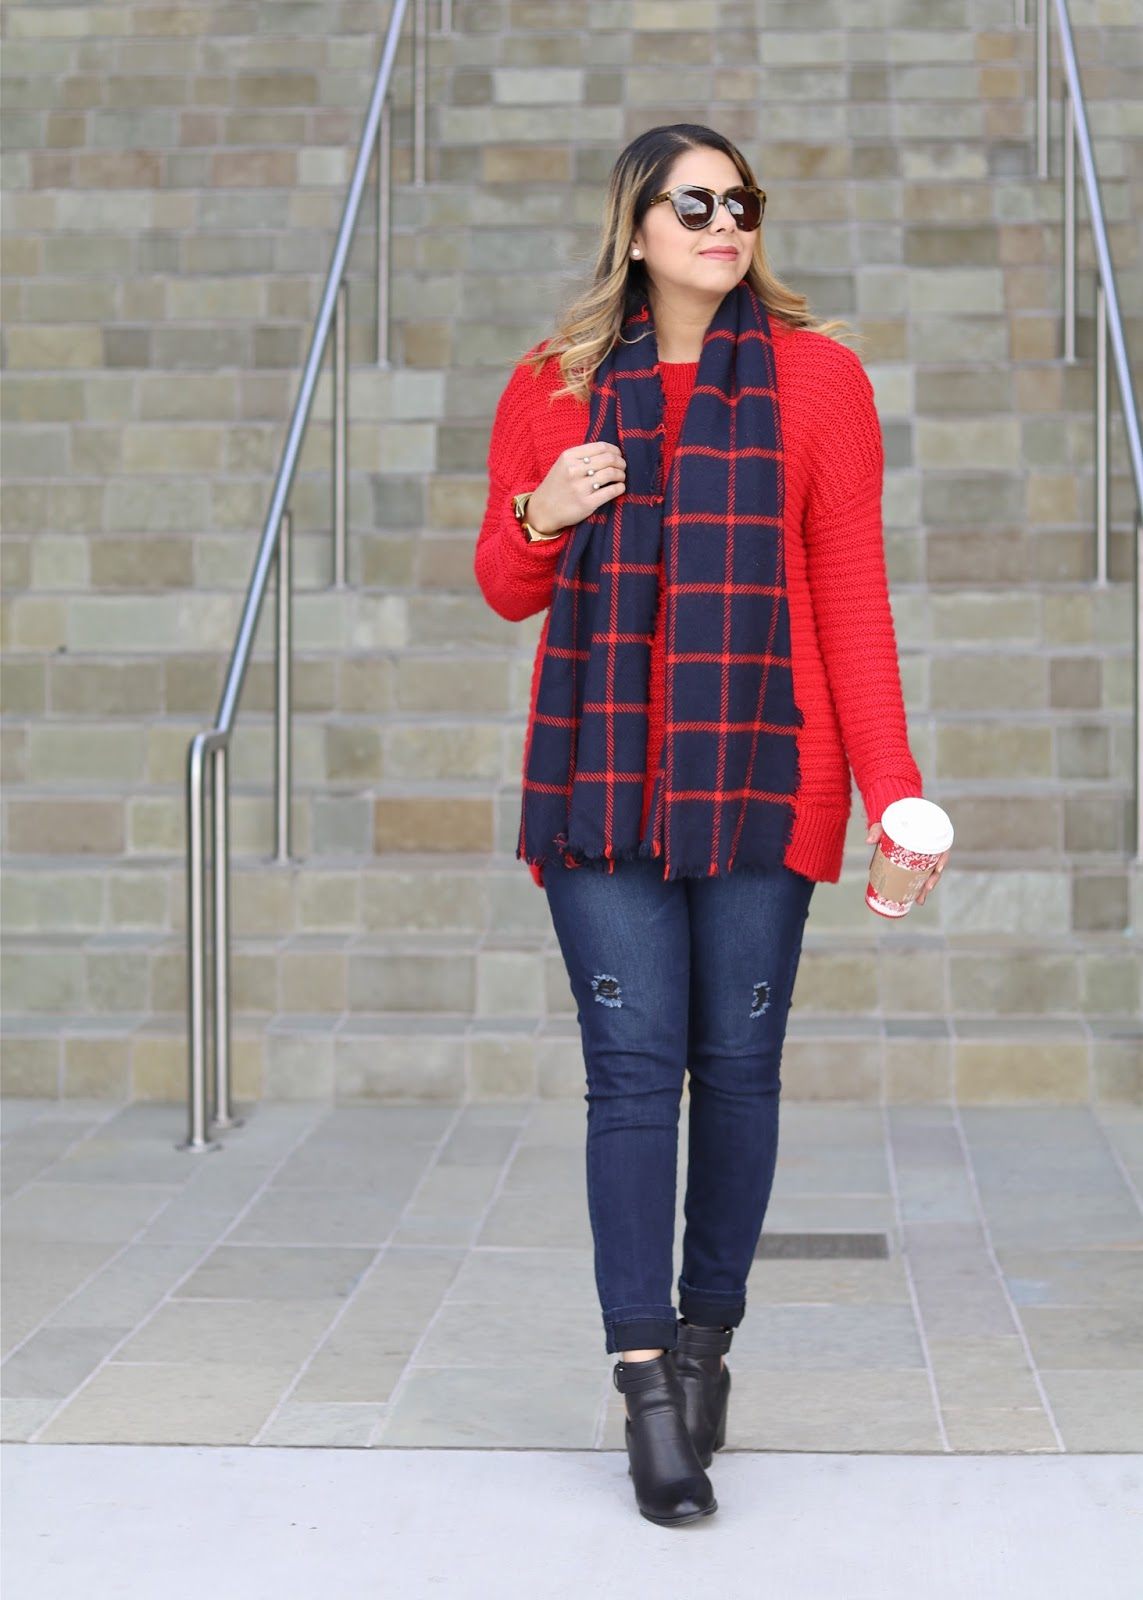 Red Knit sweater outfit, san diego fashion blogger, what to wear in san diego in winter